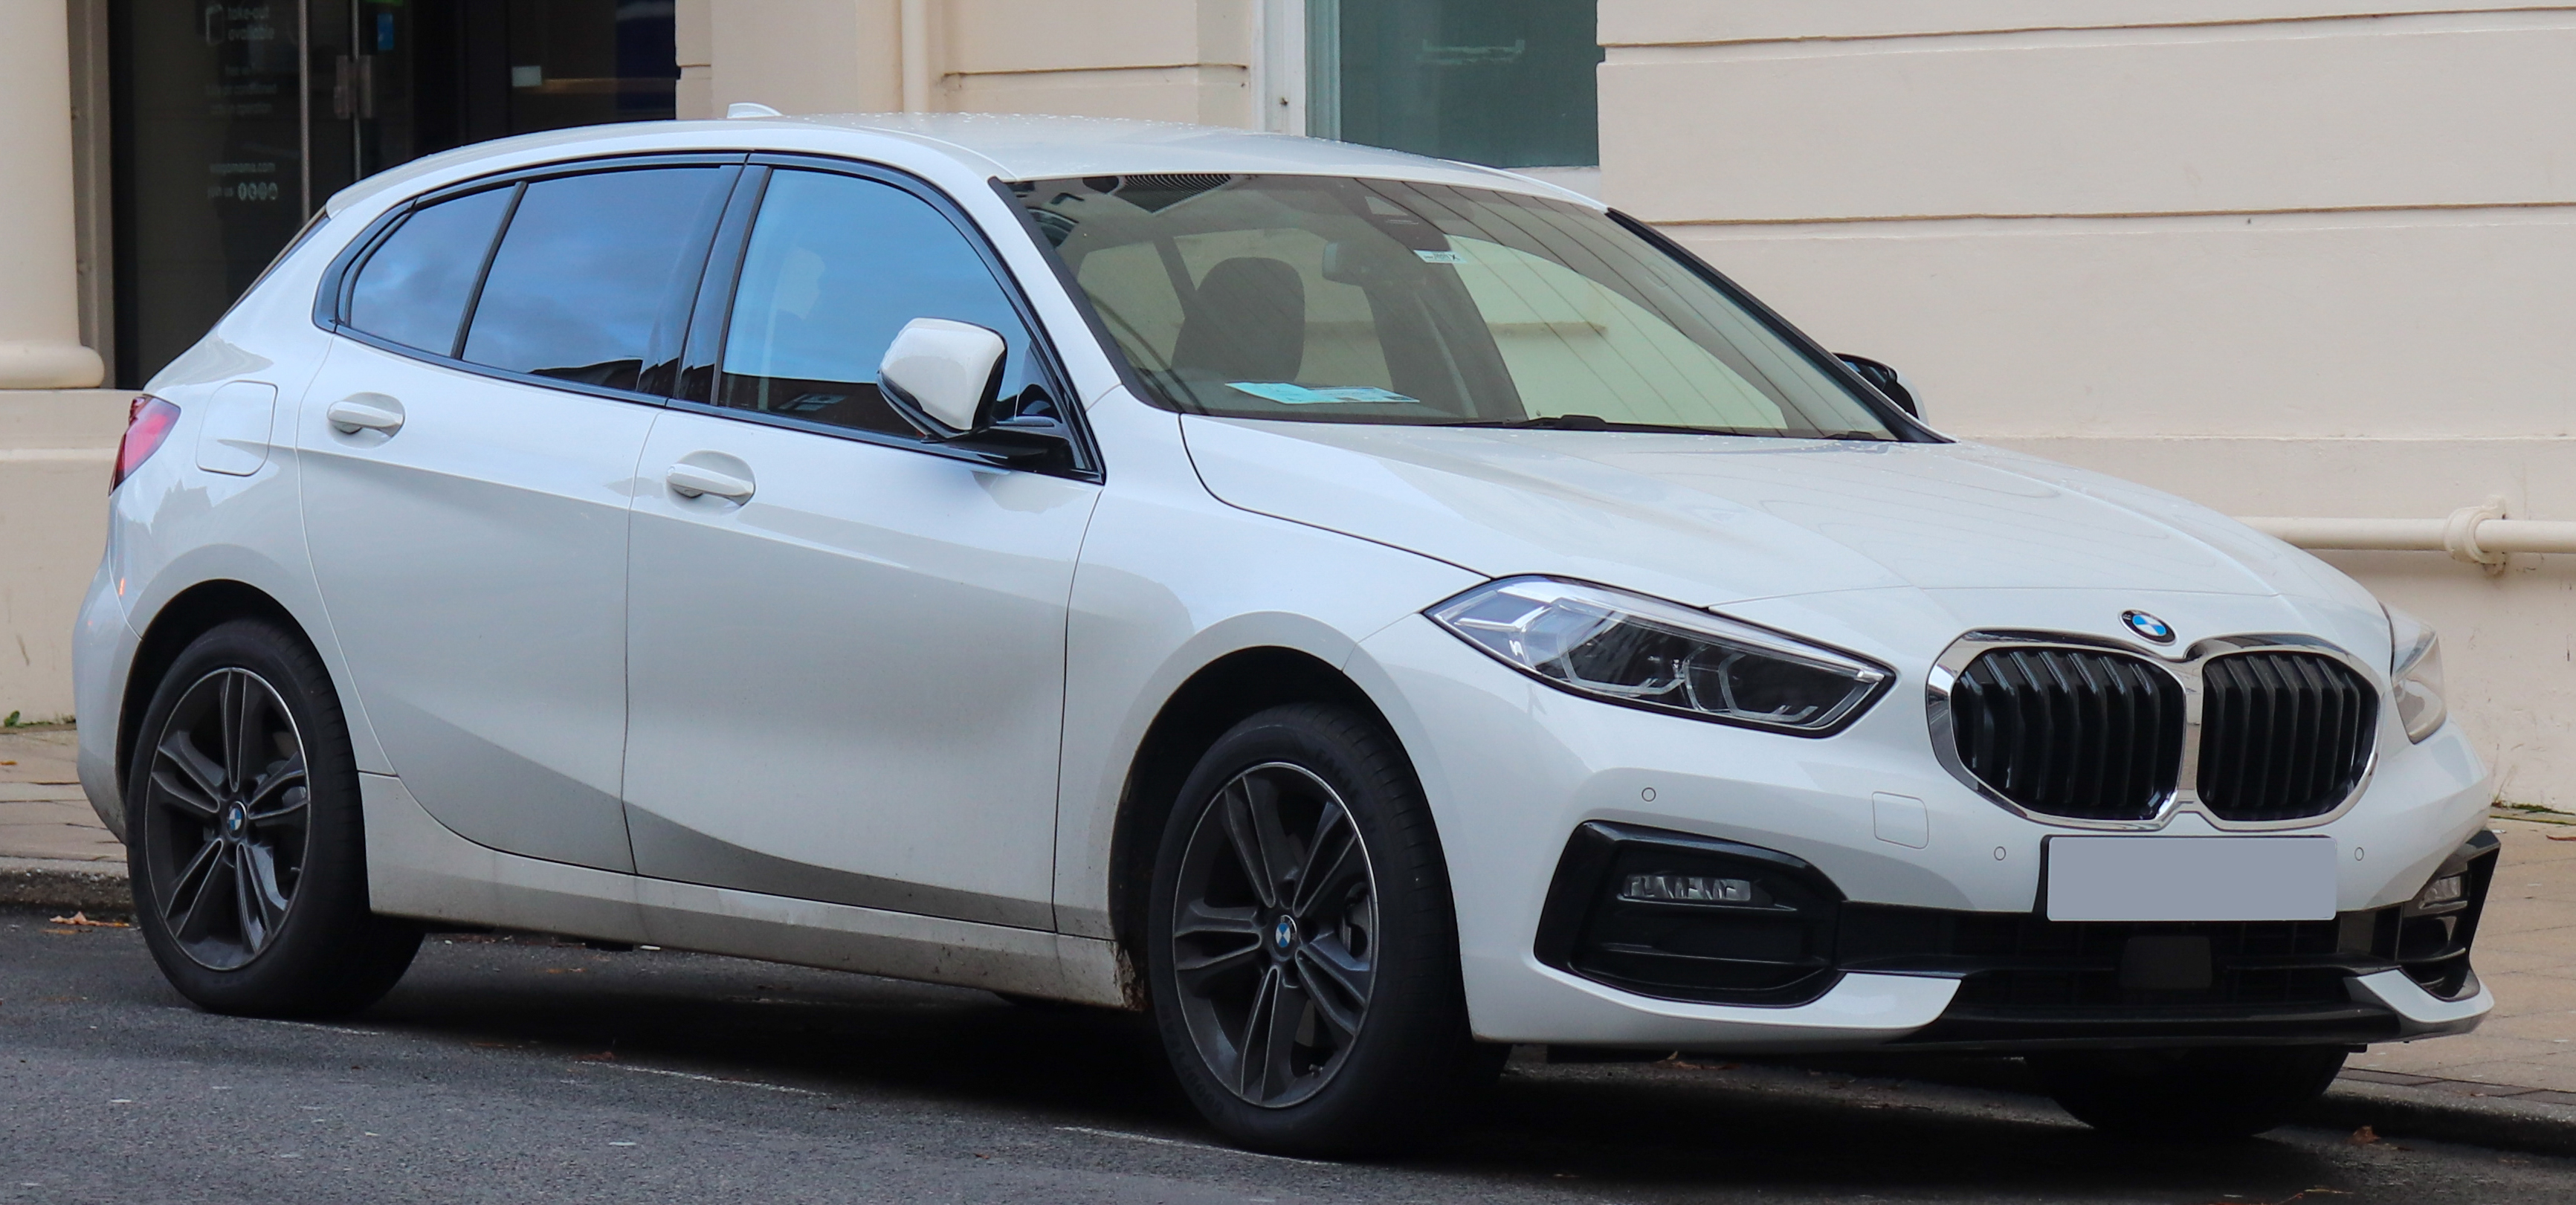 Image search result for bmw 118